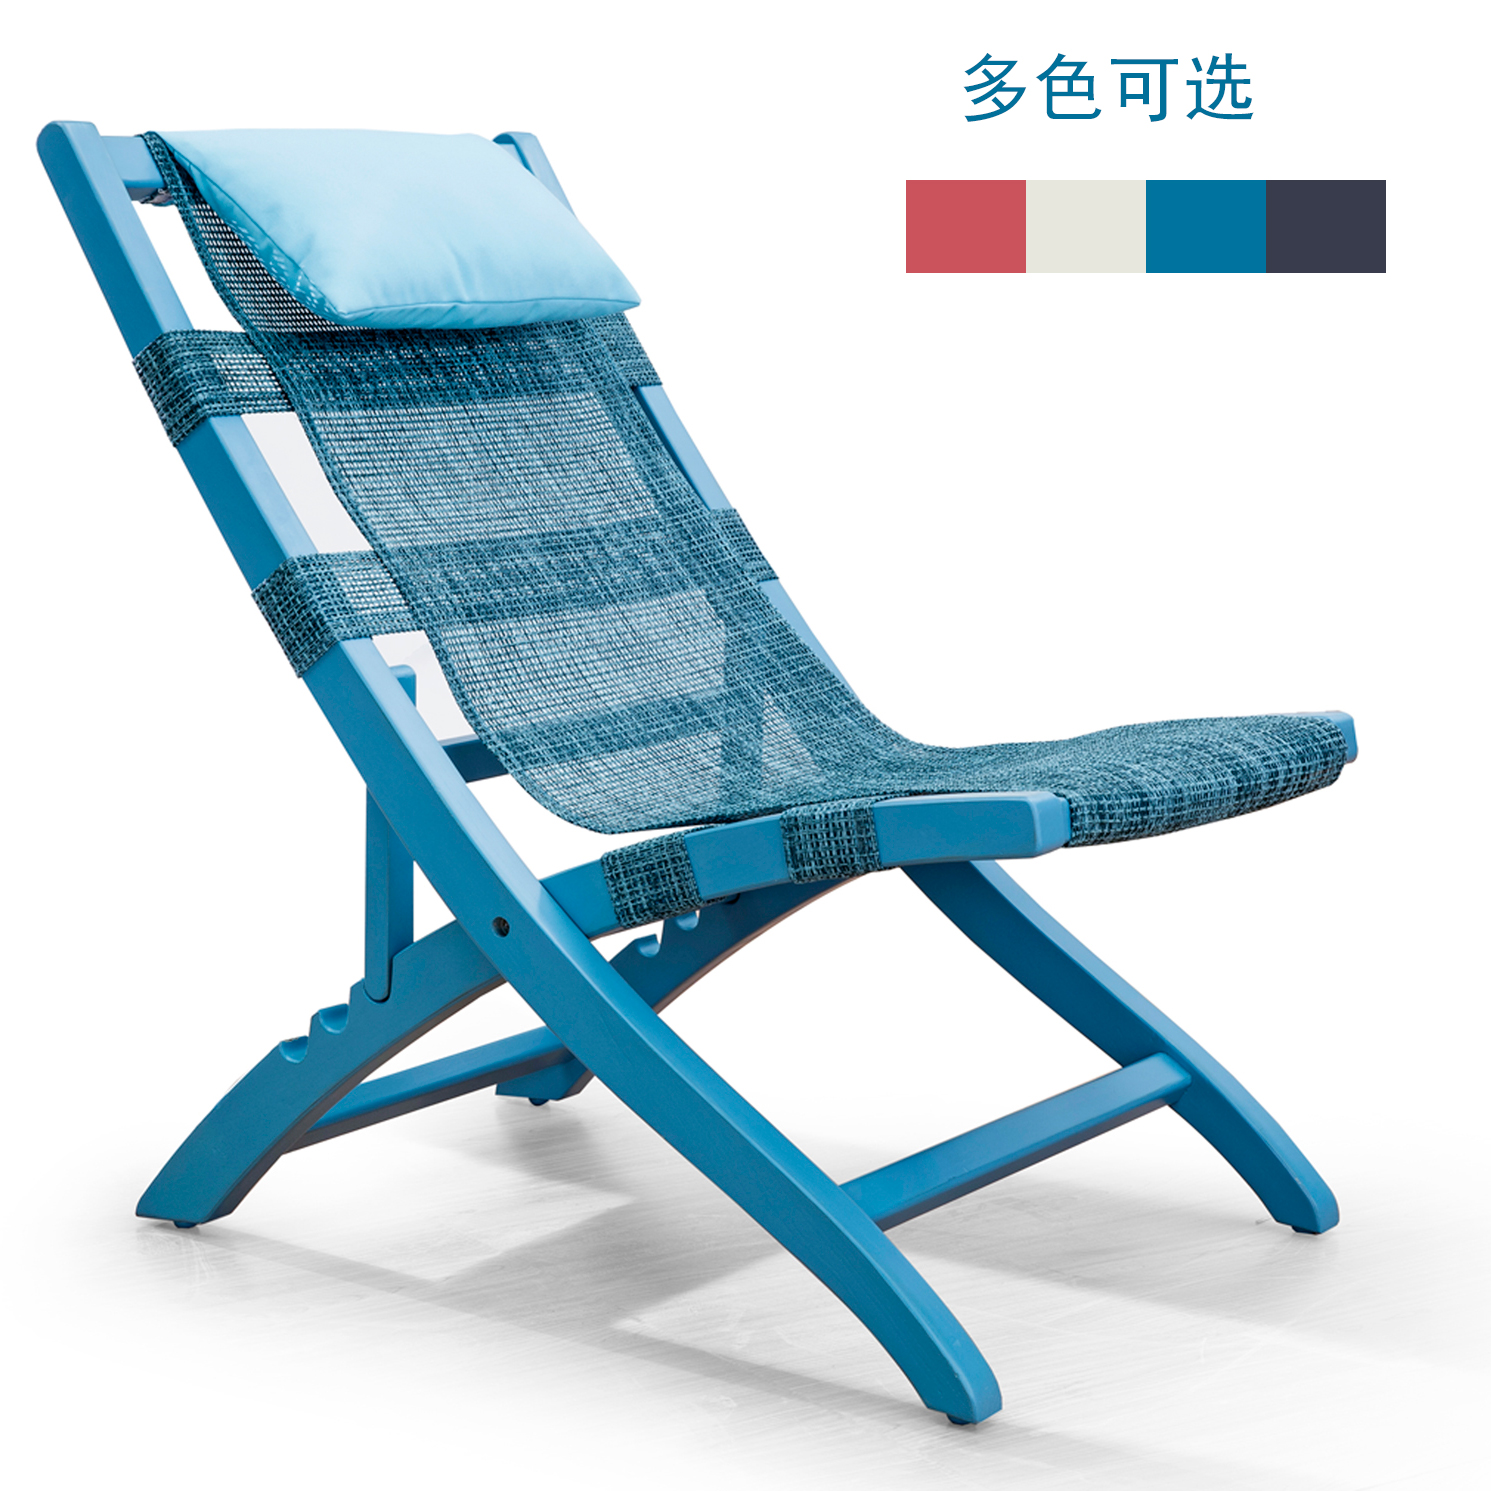 Solid Wood Bedroom Chaise Lounge Chairs Wooden Folding